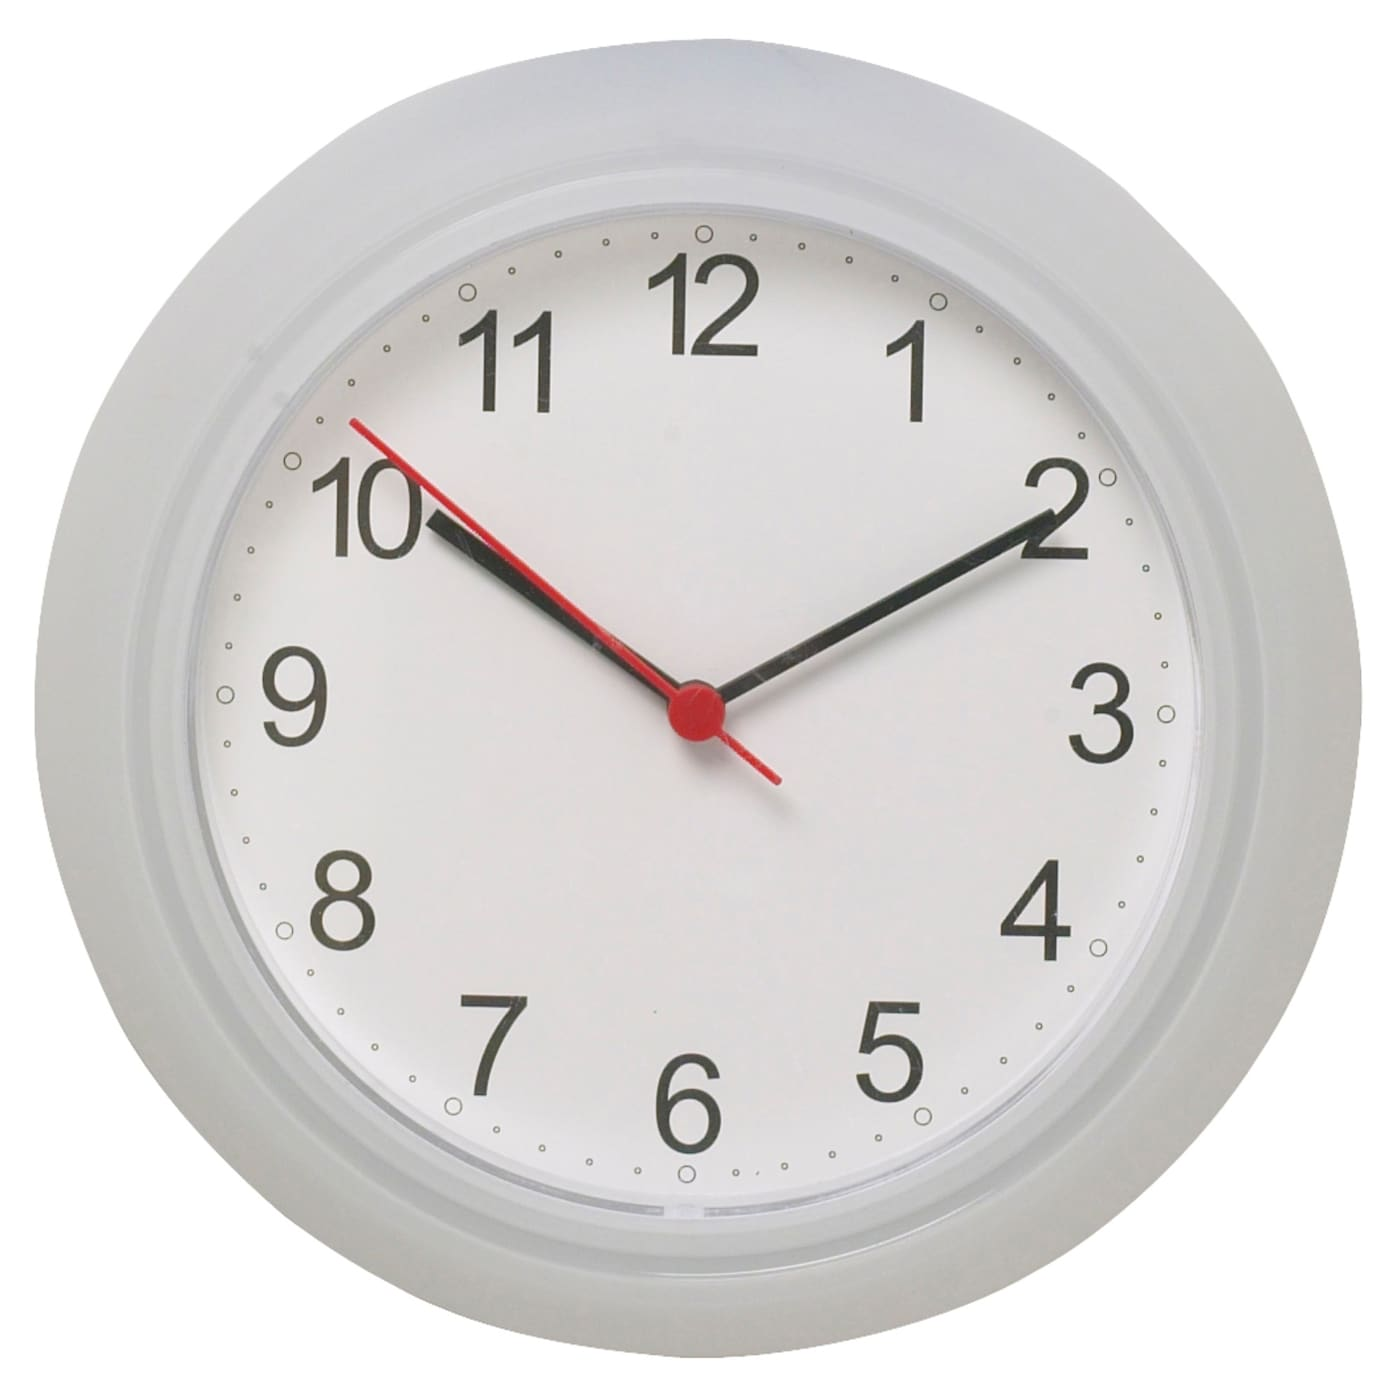 wall clocks  table clocks  ikea - ikea rusch wall clock highly accurate at keeping time as it is fitted witha quartz